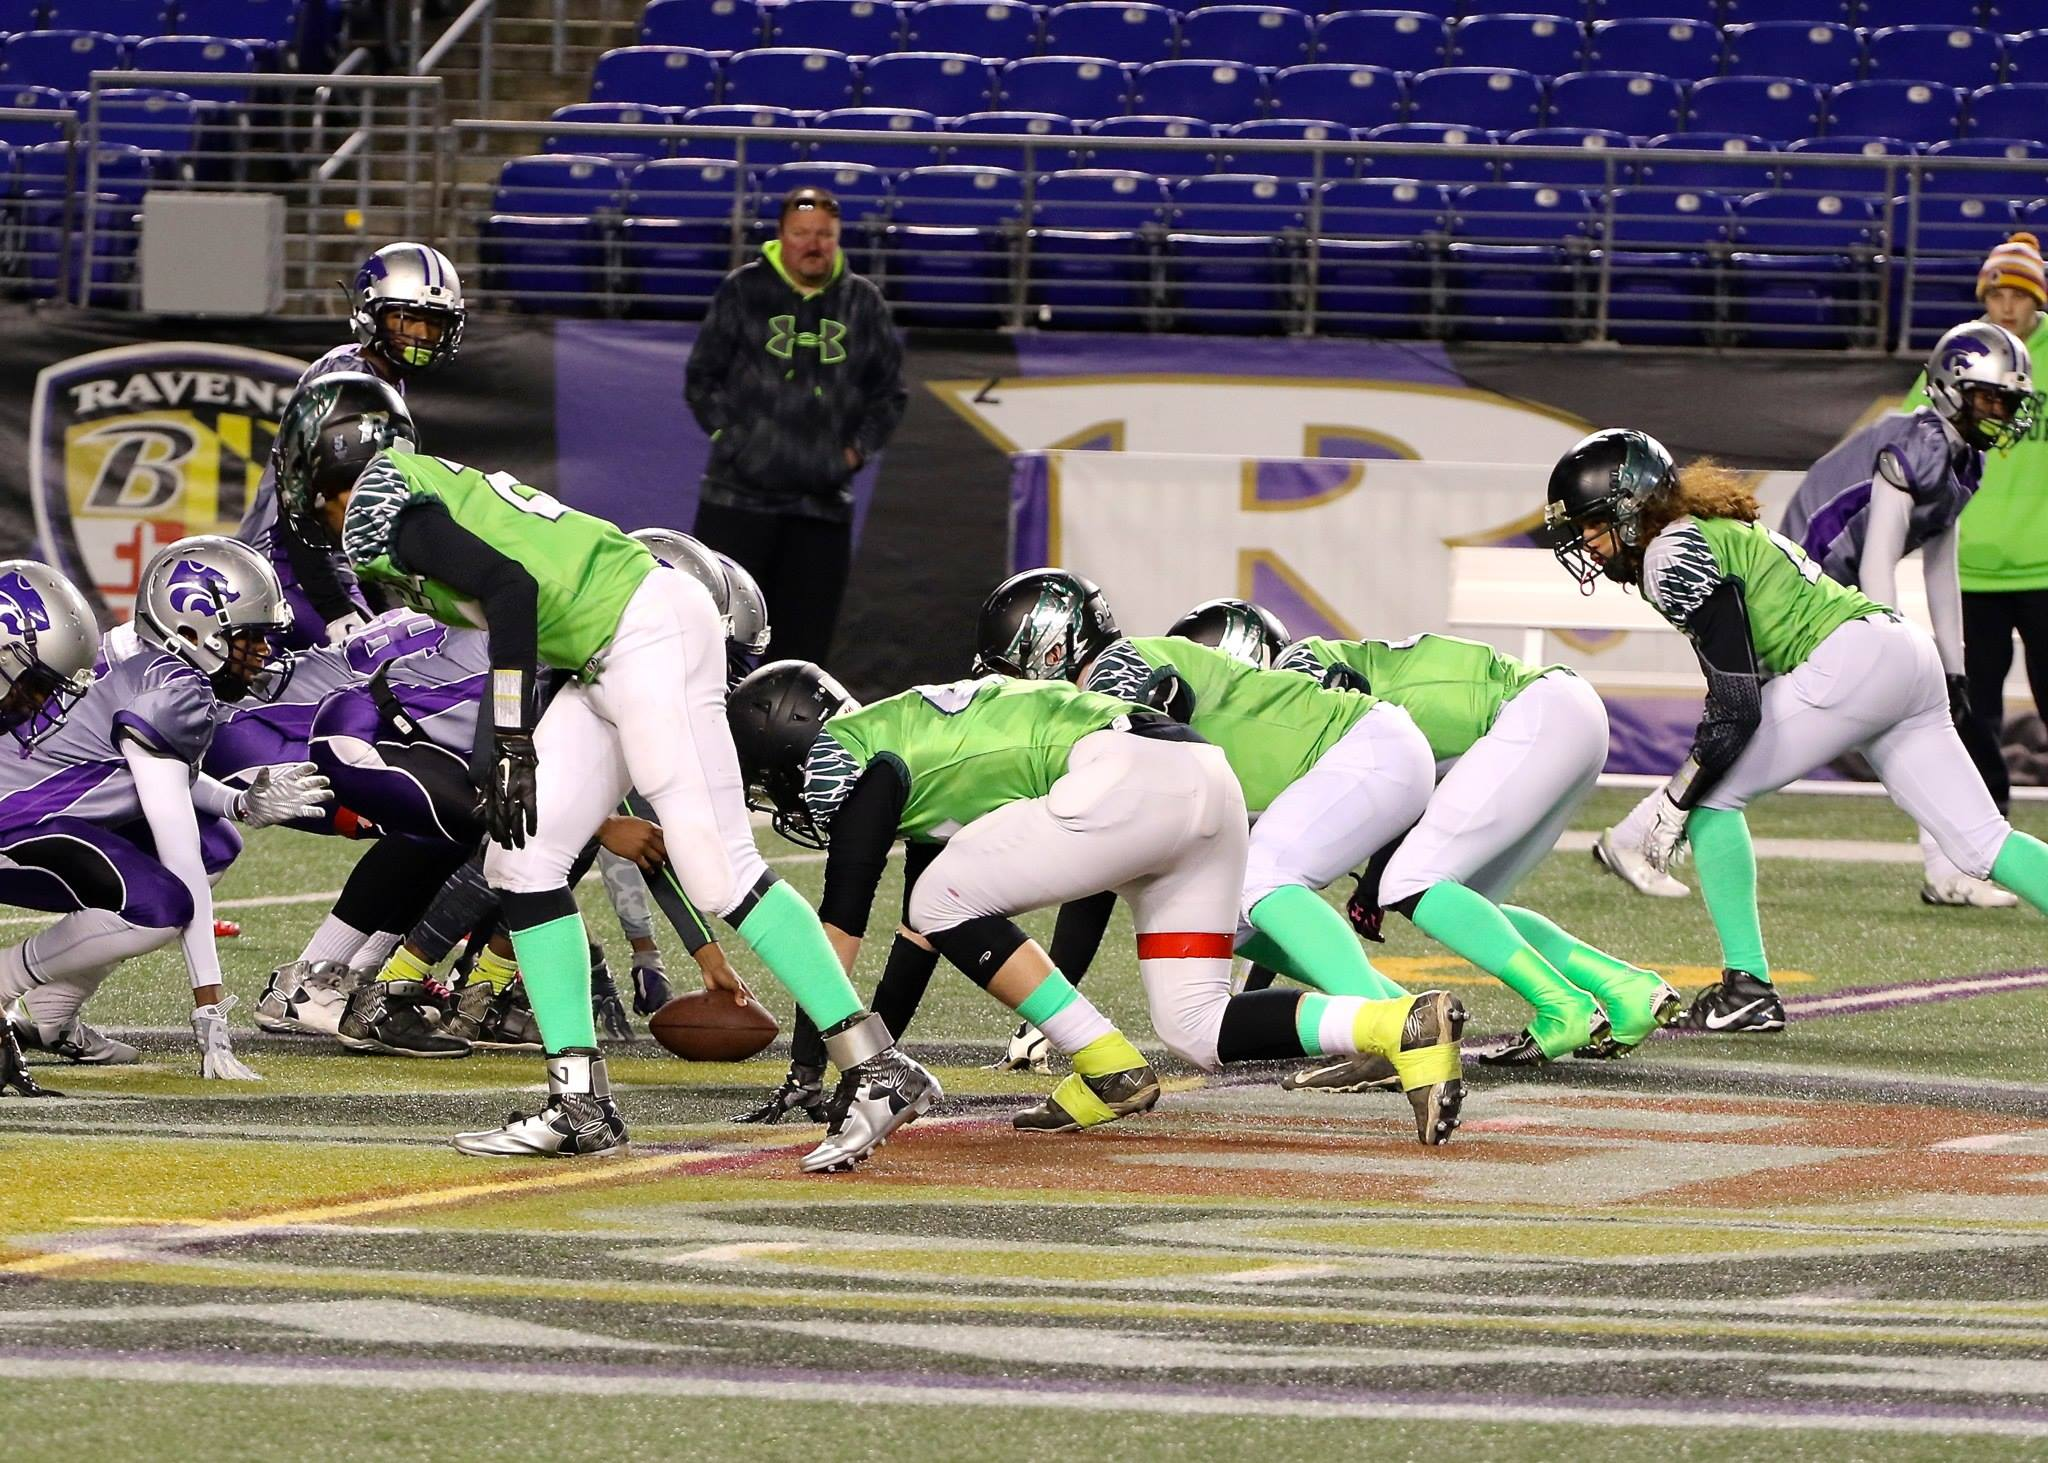 Prince Frederick Eagles - Maryland State Championships at Ravens Stadium